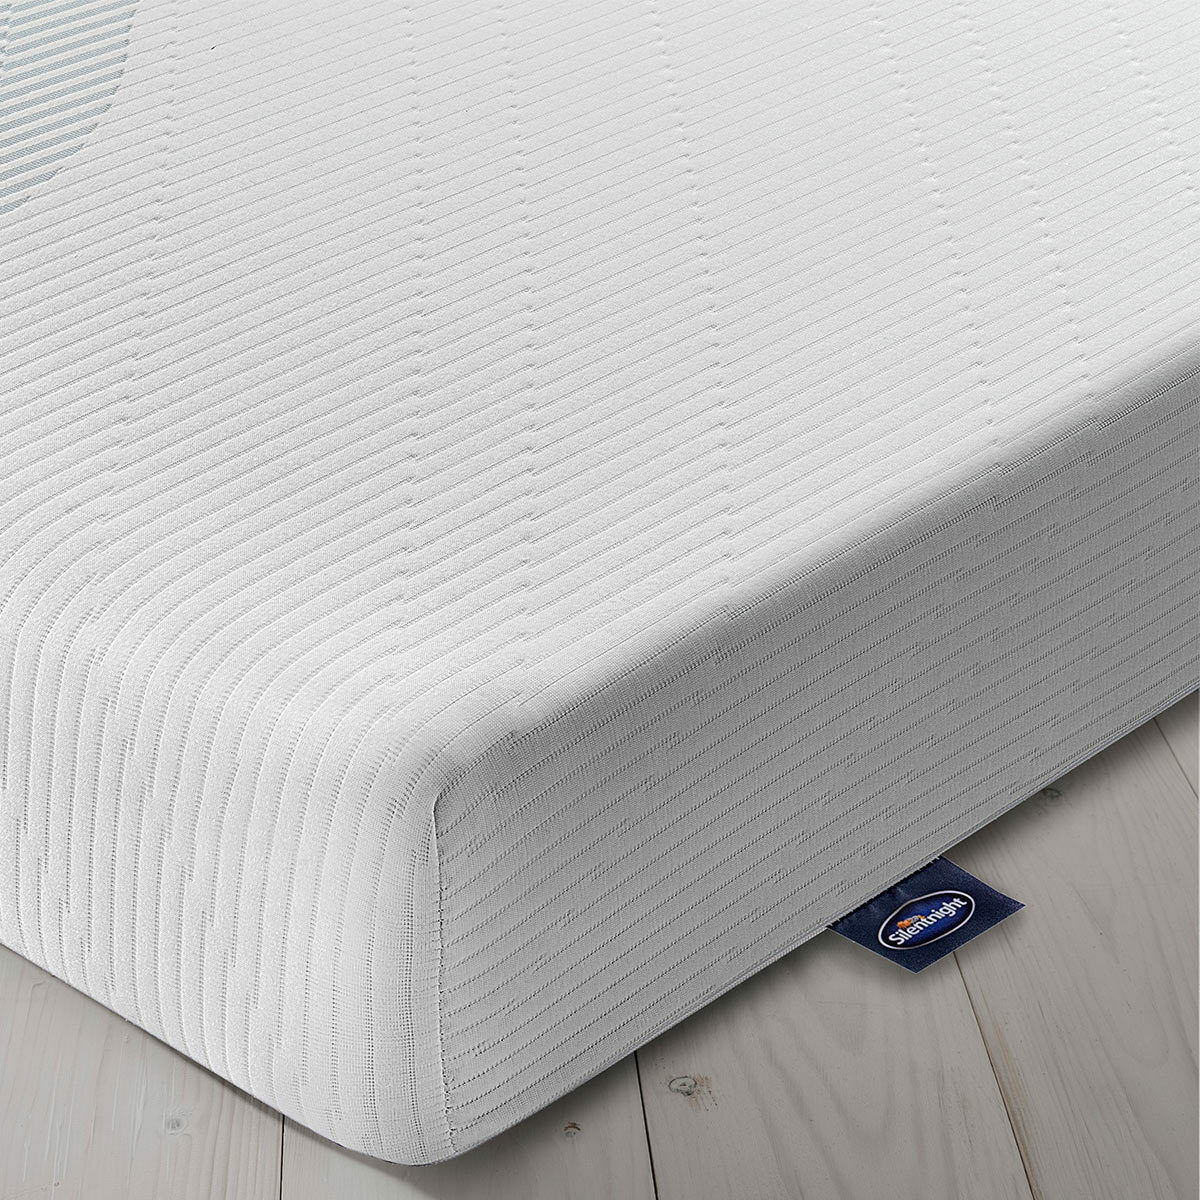 Silentnight Now 5 Zone Rolled Memory Foam Mattress Single Double Amp King Size Ebay